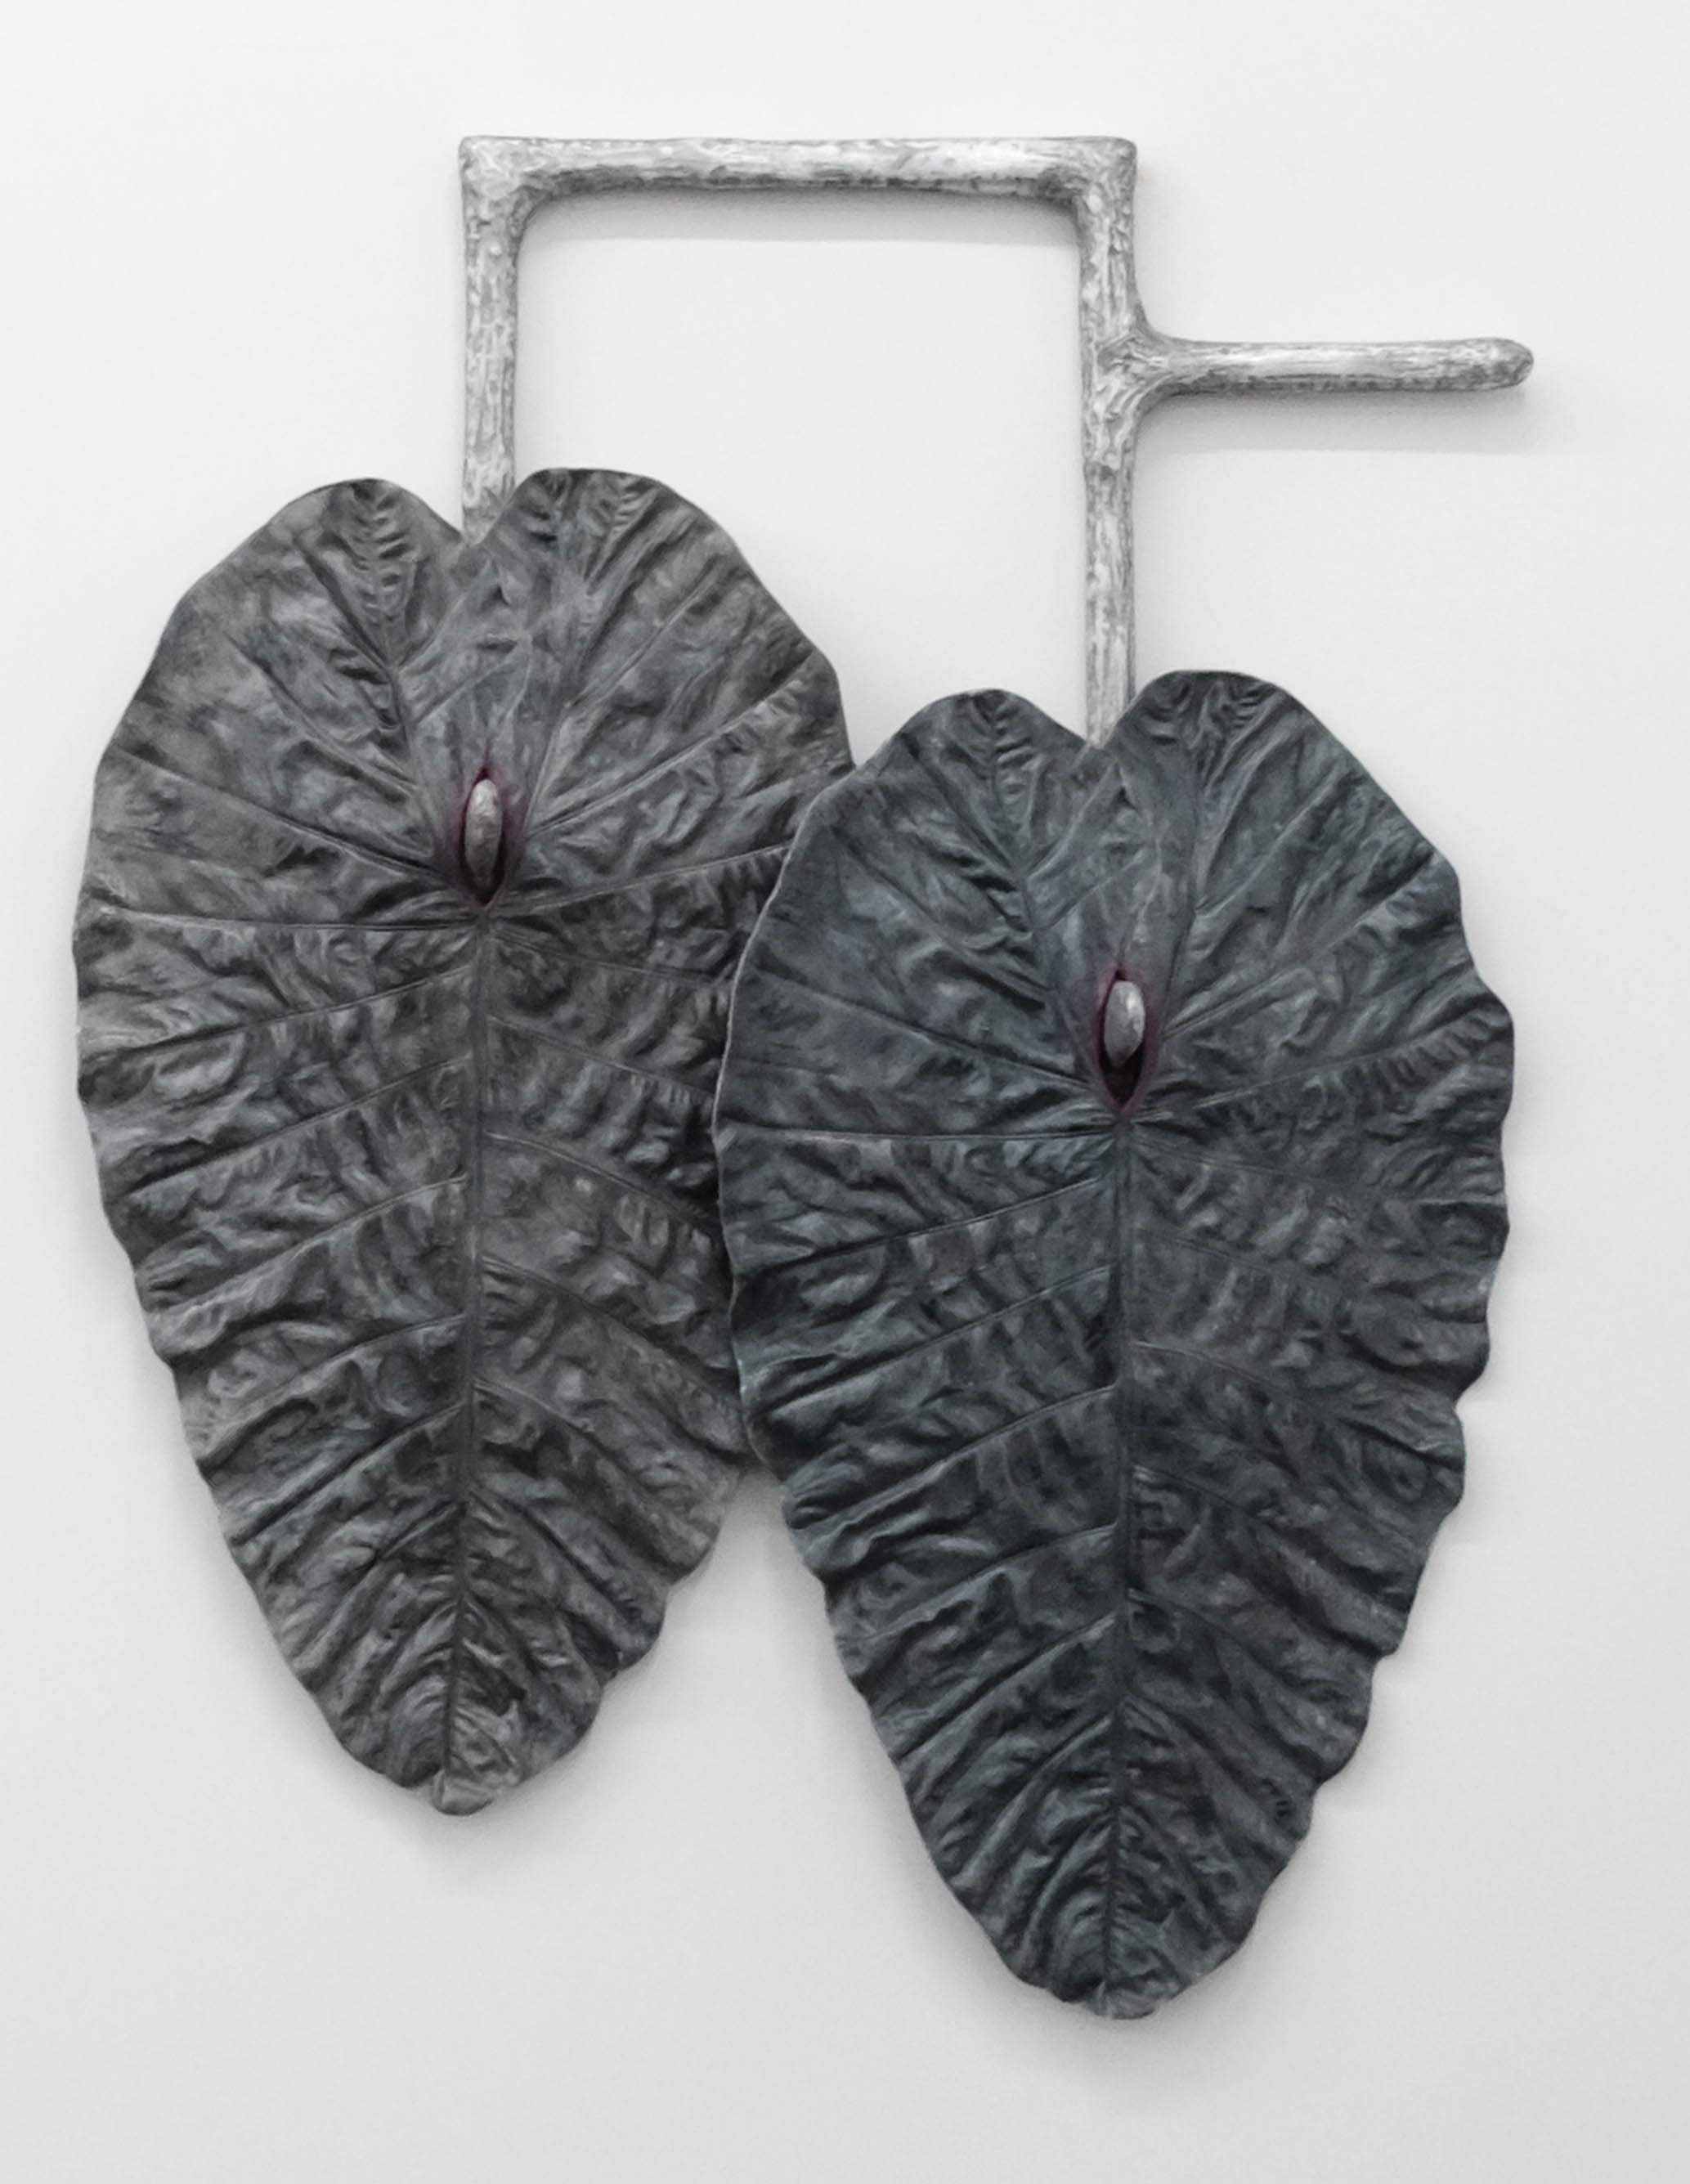 Karen Lofgren  Like This I See You in Dreams (como lo cura, locura) , 2018 polyurethane castings of Amazonian medical plant leaves (la pataquina negra), aluminum powder, embedded wool, fiberglass, on cast aluminum 52 x 40 x 9 in (132.1 x 101.6 x 22.9 cm)